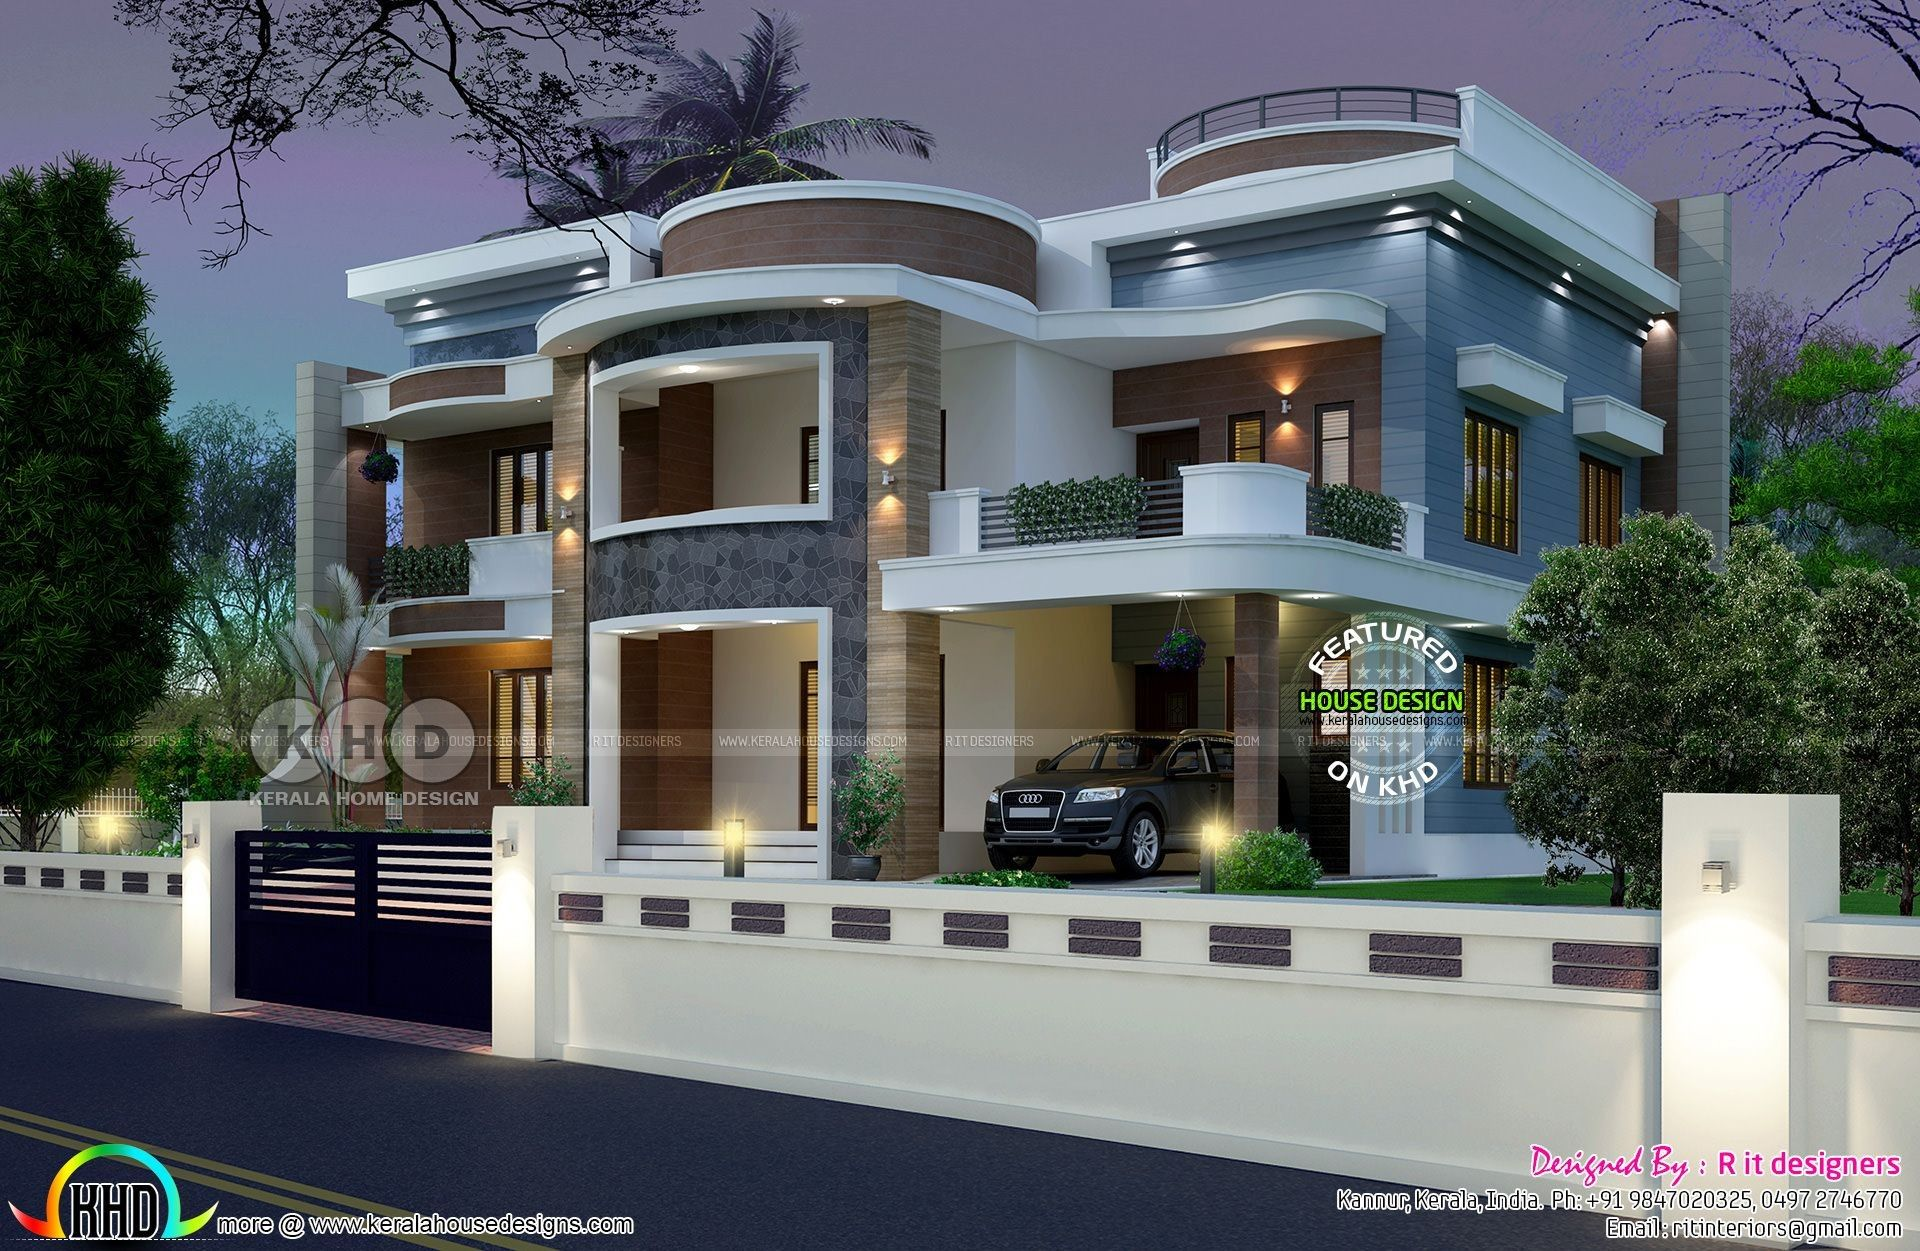 Front House Design With Bricks Philippines Inspirational Kerala Home Design And Floor Plans Of Fro Kerala House Design 6 Bedroom House Plans Modern House Plans